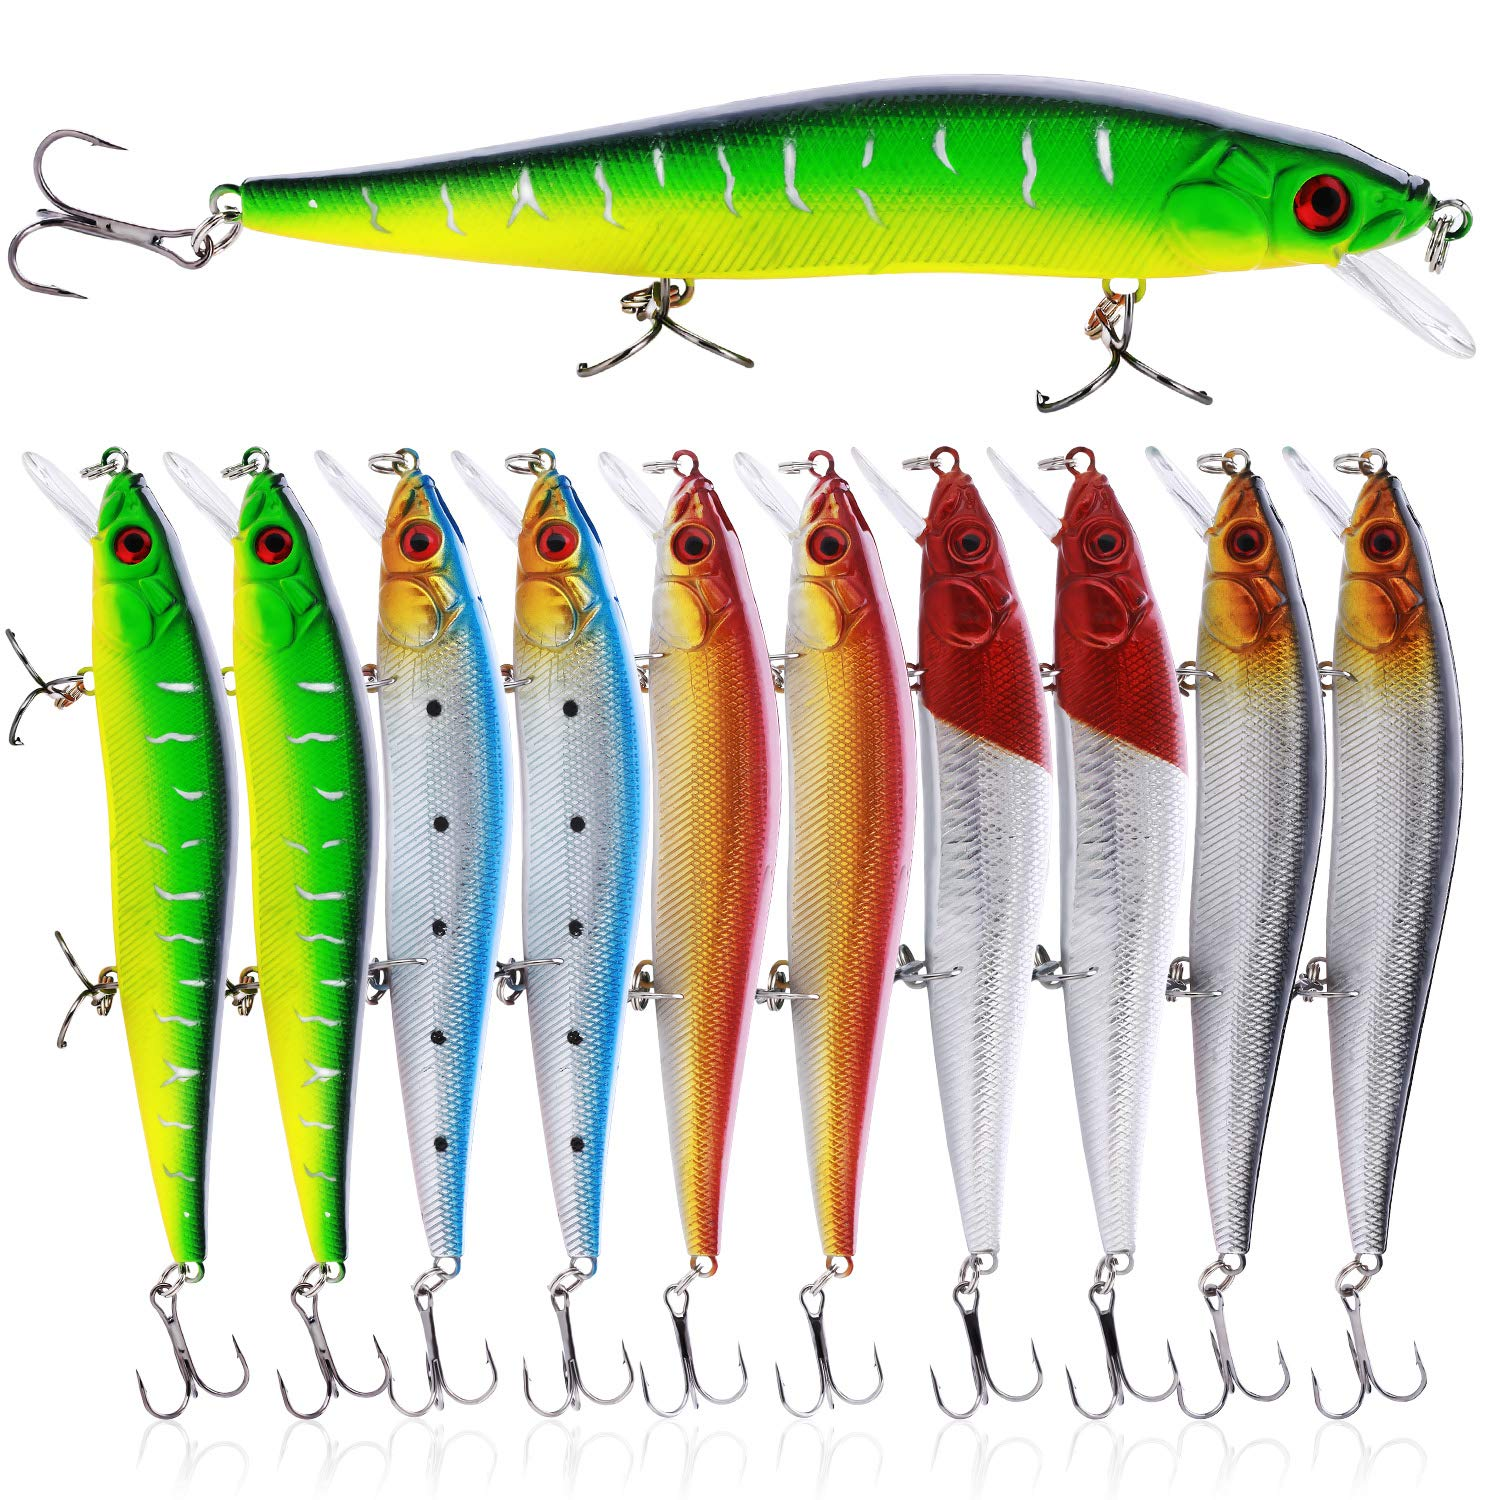 Sougayilang Fishing Lures Hard Bait Minnow Crankbait with Treble Hook Life-Like Swimbait Fishing Bait Deep Diver Lure Sinking Lure